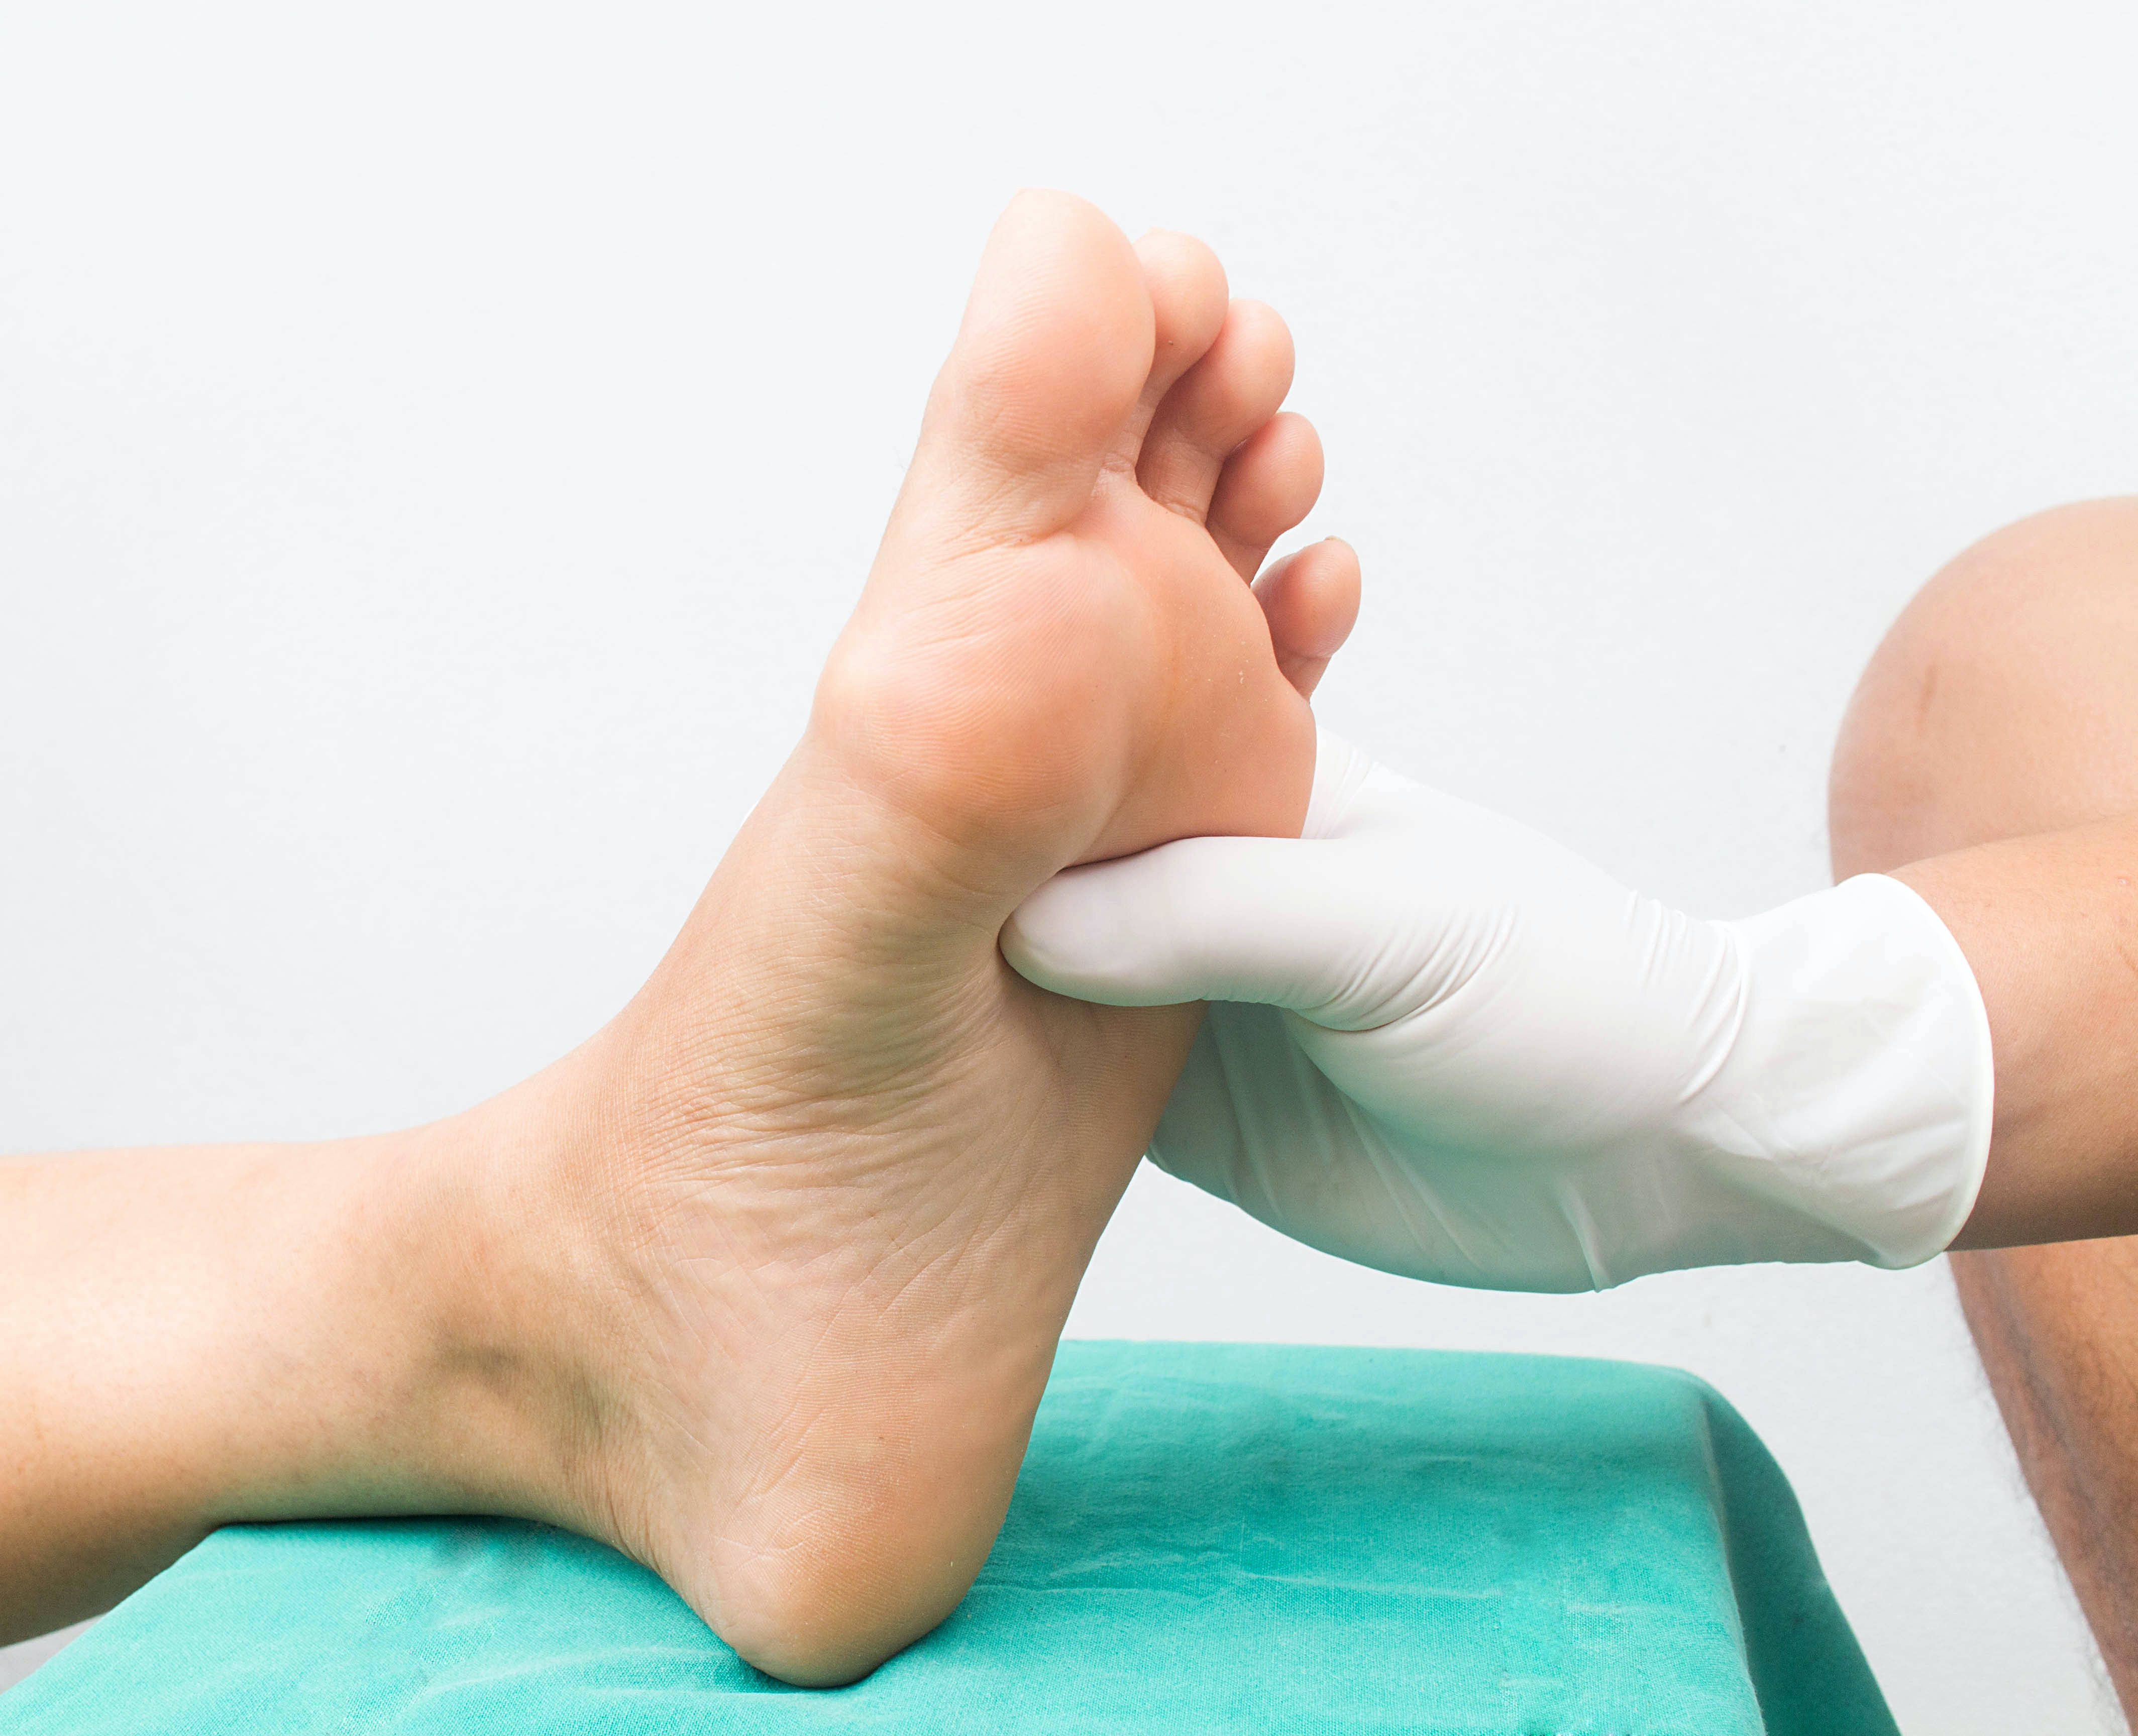 An image depicting a person suffering from swelling of the sole of the foot symptoms